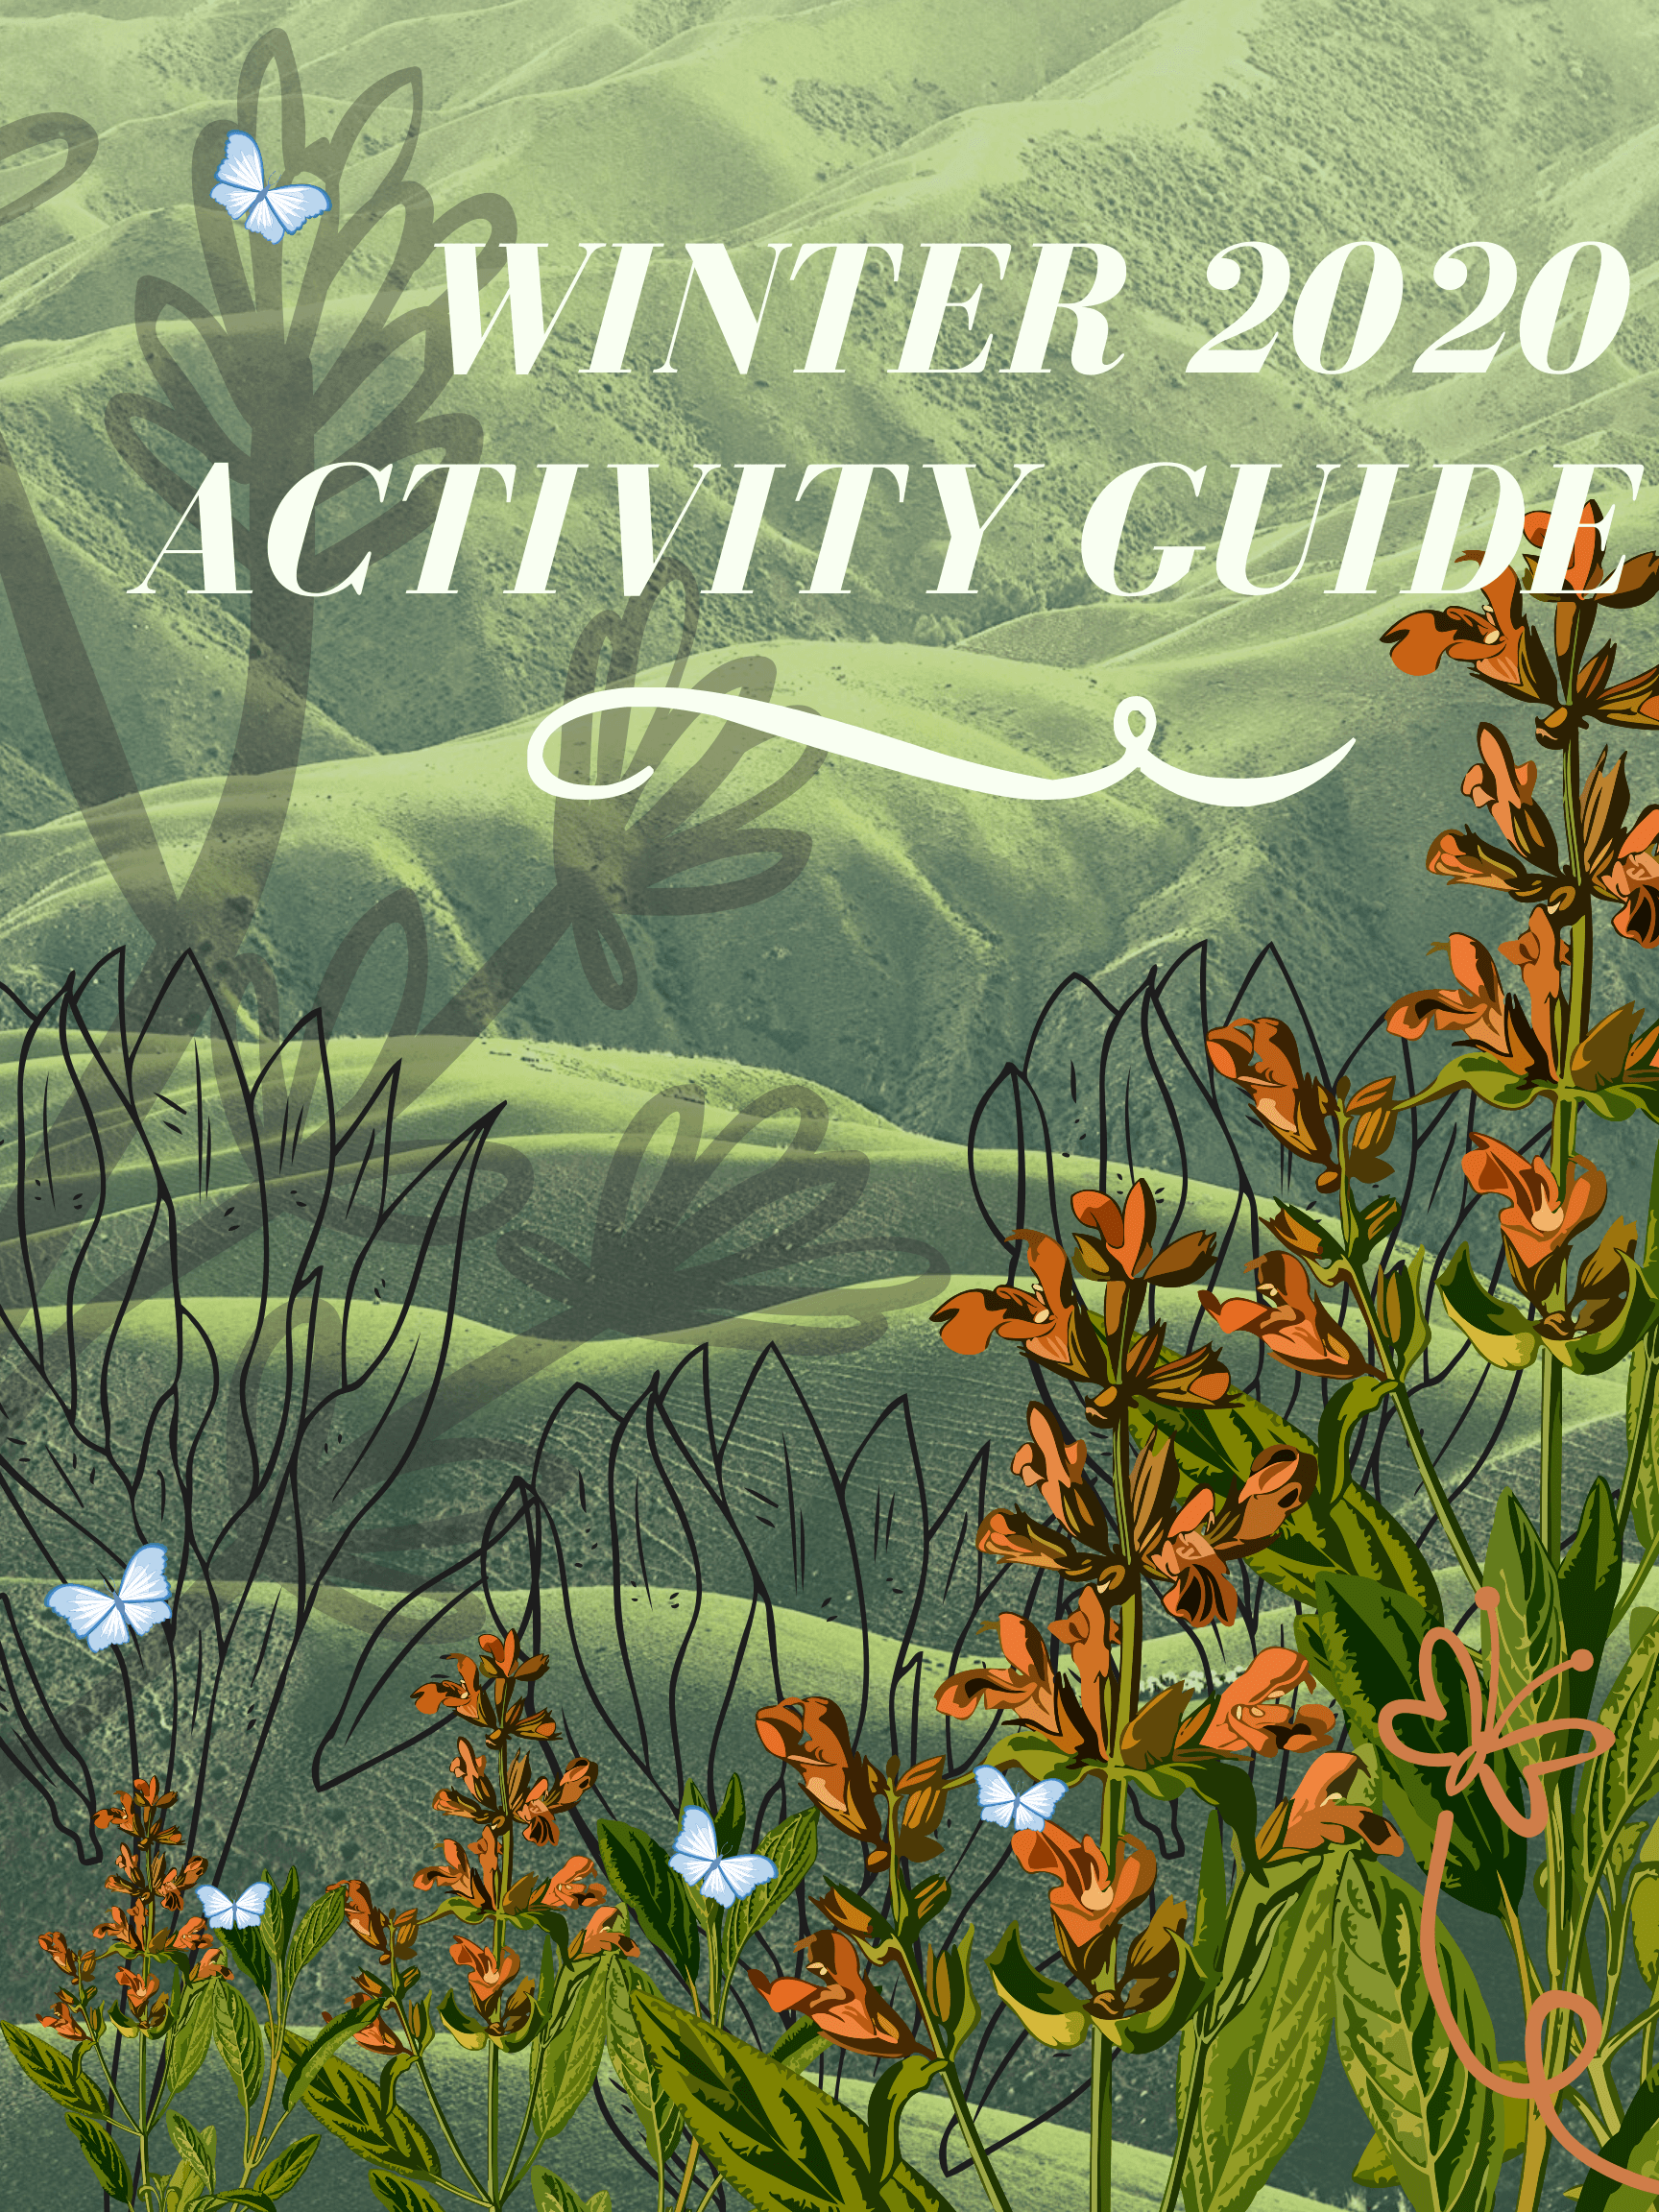 WINTER 2020 RECREATION ACTIVITY GUIDE